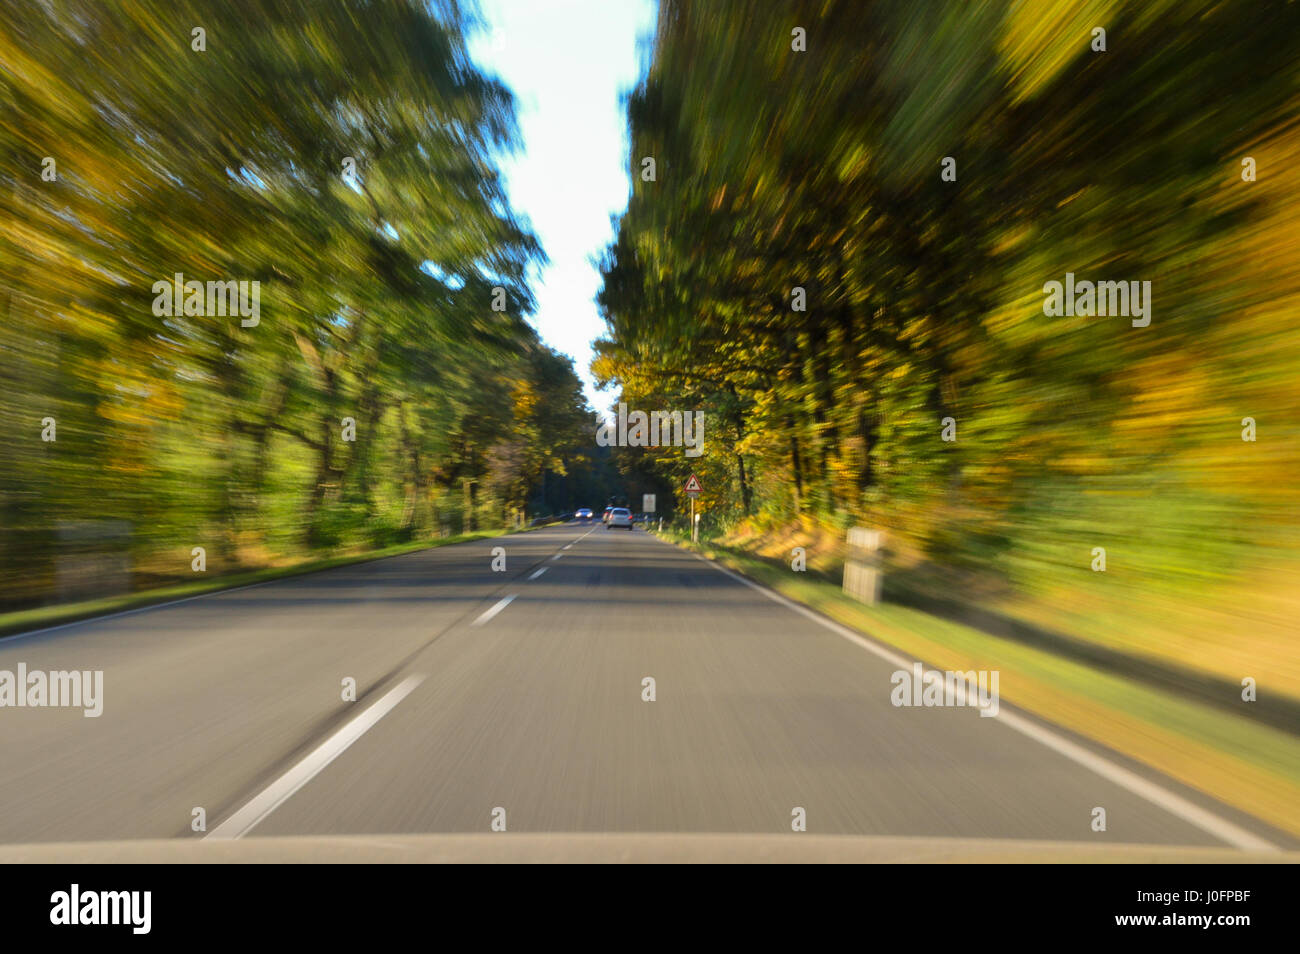 Dangerous situation in traffic during autumn - Stock Image